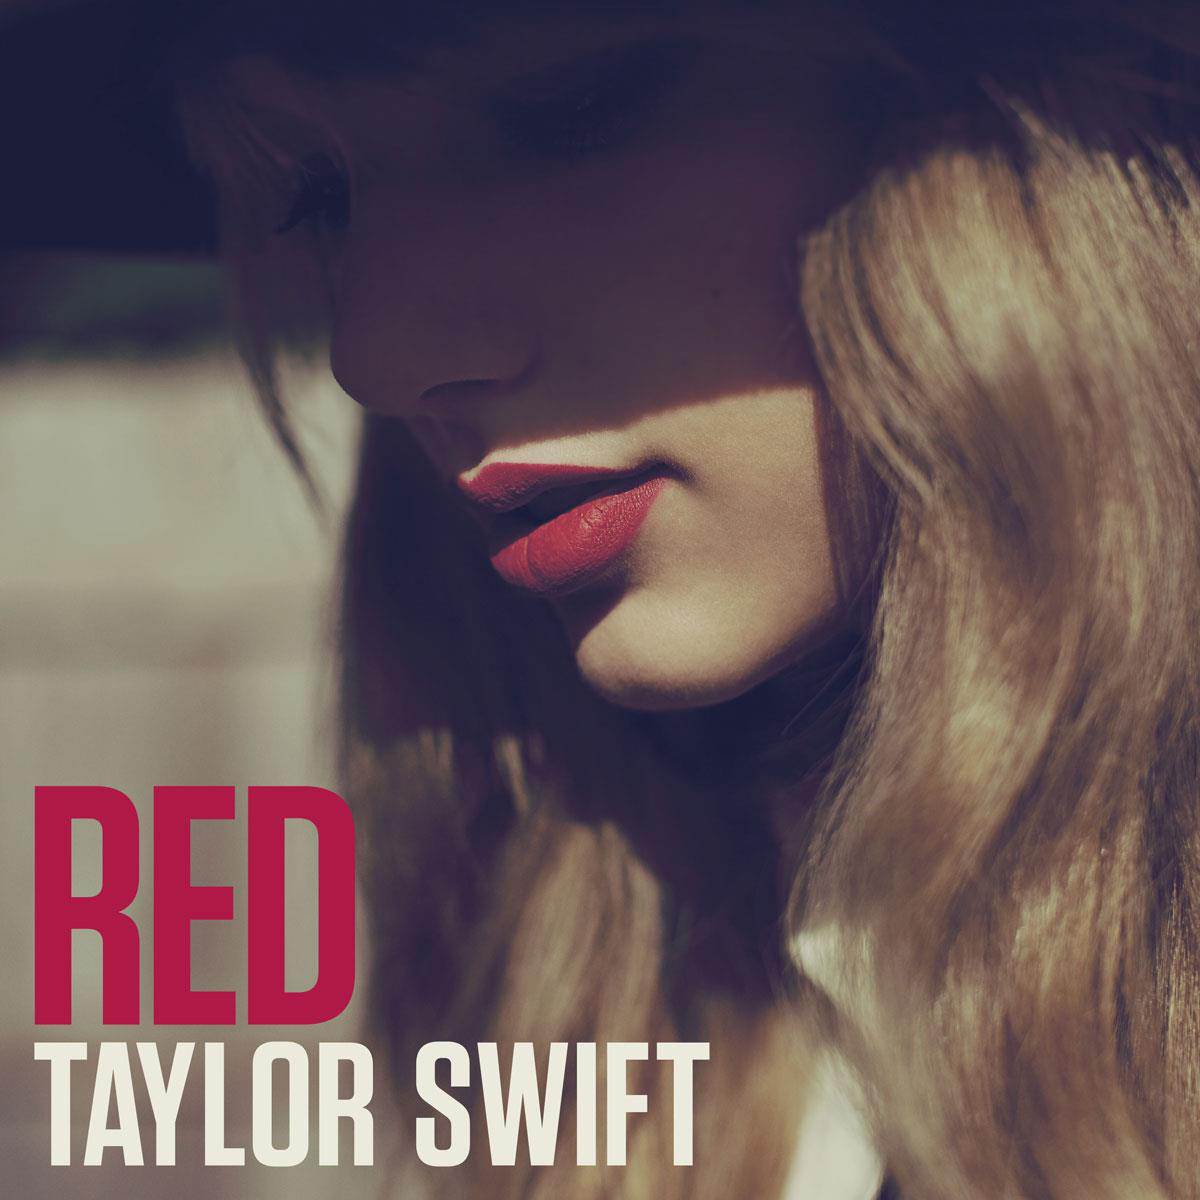 Cover art for Taylor Swift's 2012 record  Red.